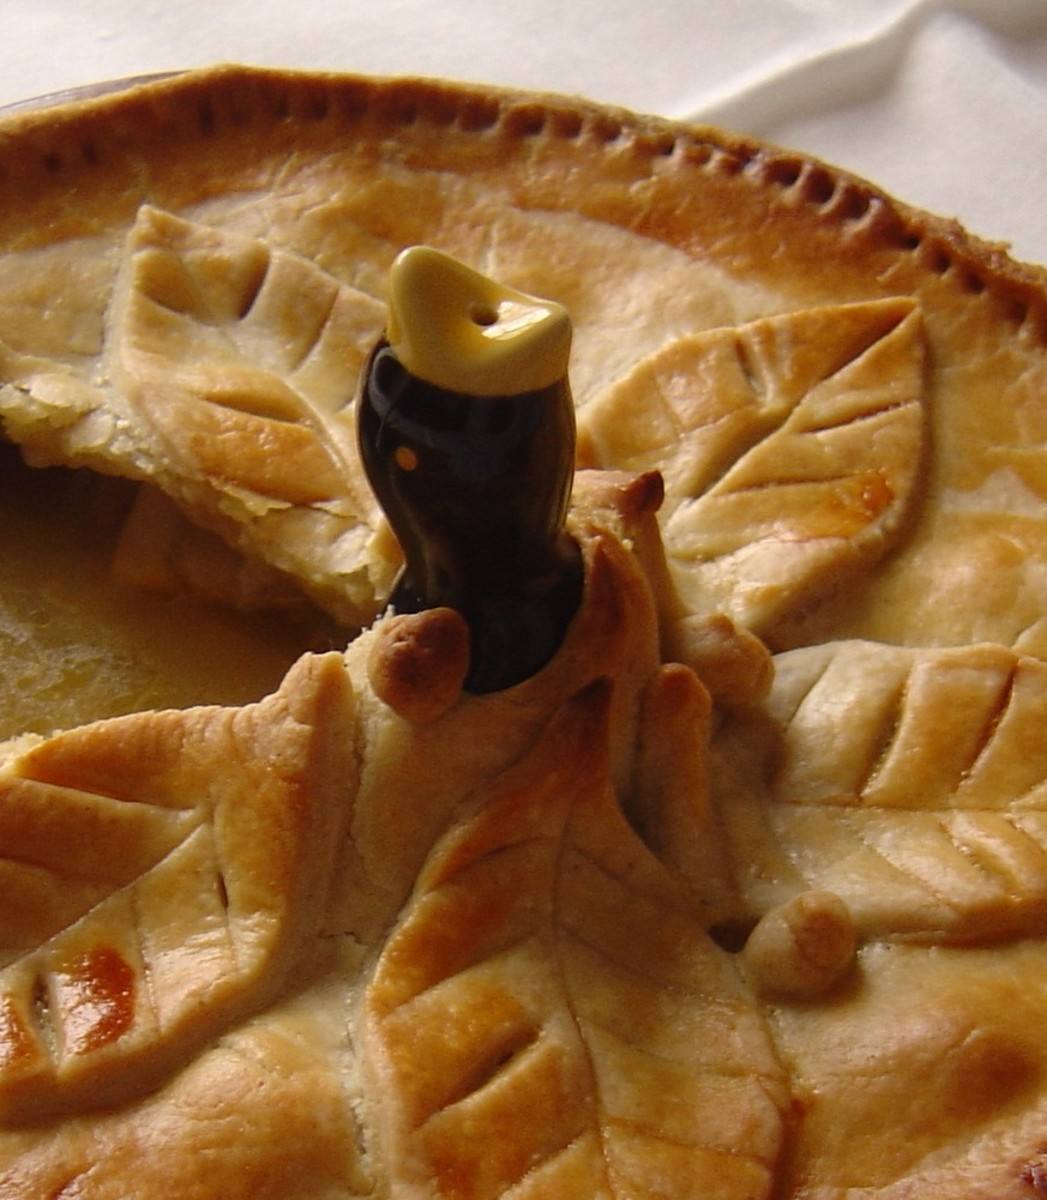 Put the bird in the pie and seal the pastry around it